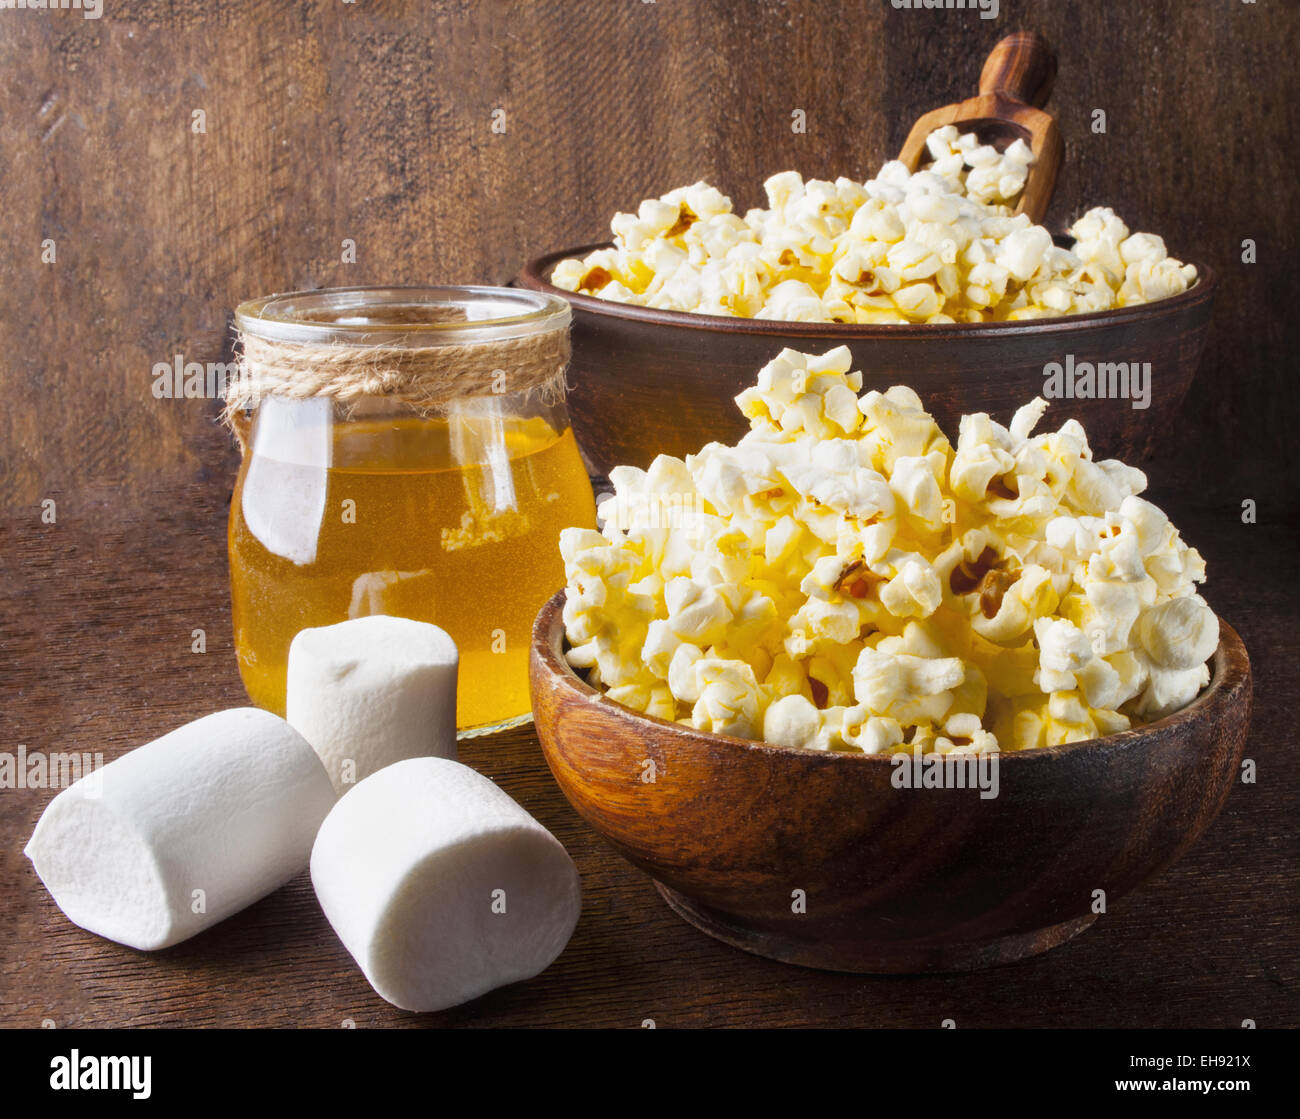 Fresh popcorn in bowl on wooden table. - Stock Image